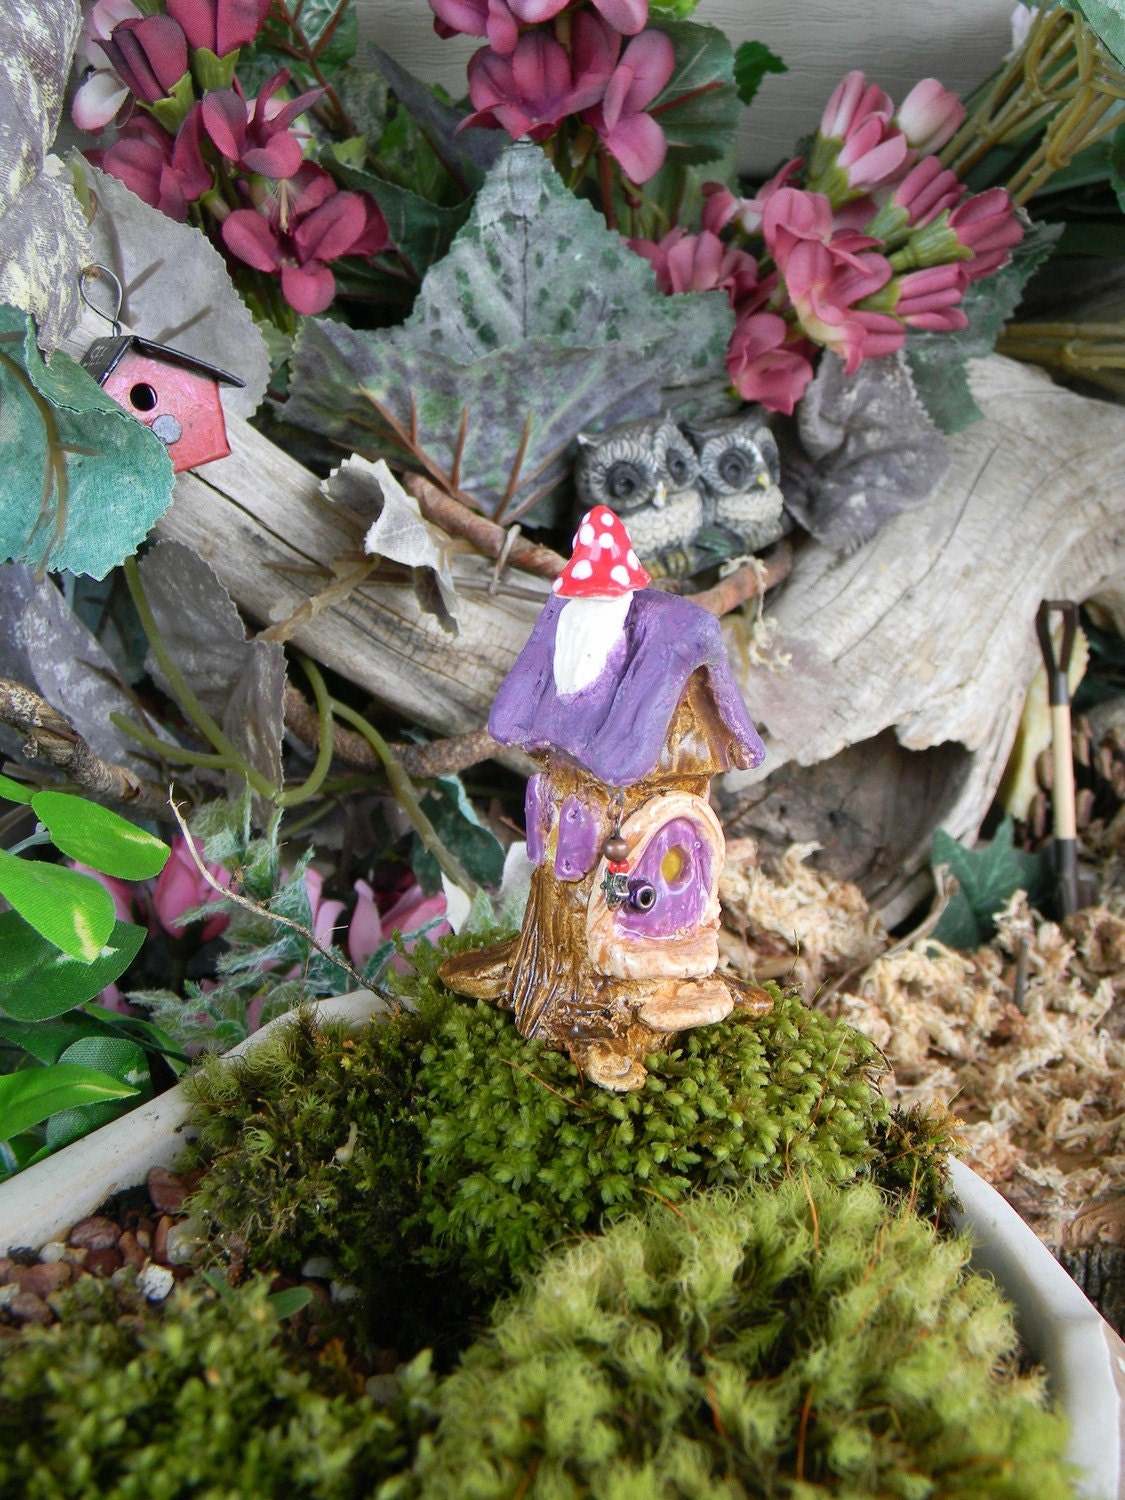 Gnome Tree Stump Home: Tree Stump HOUSE Gnome Home.................. Wee Little